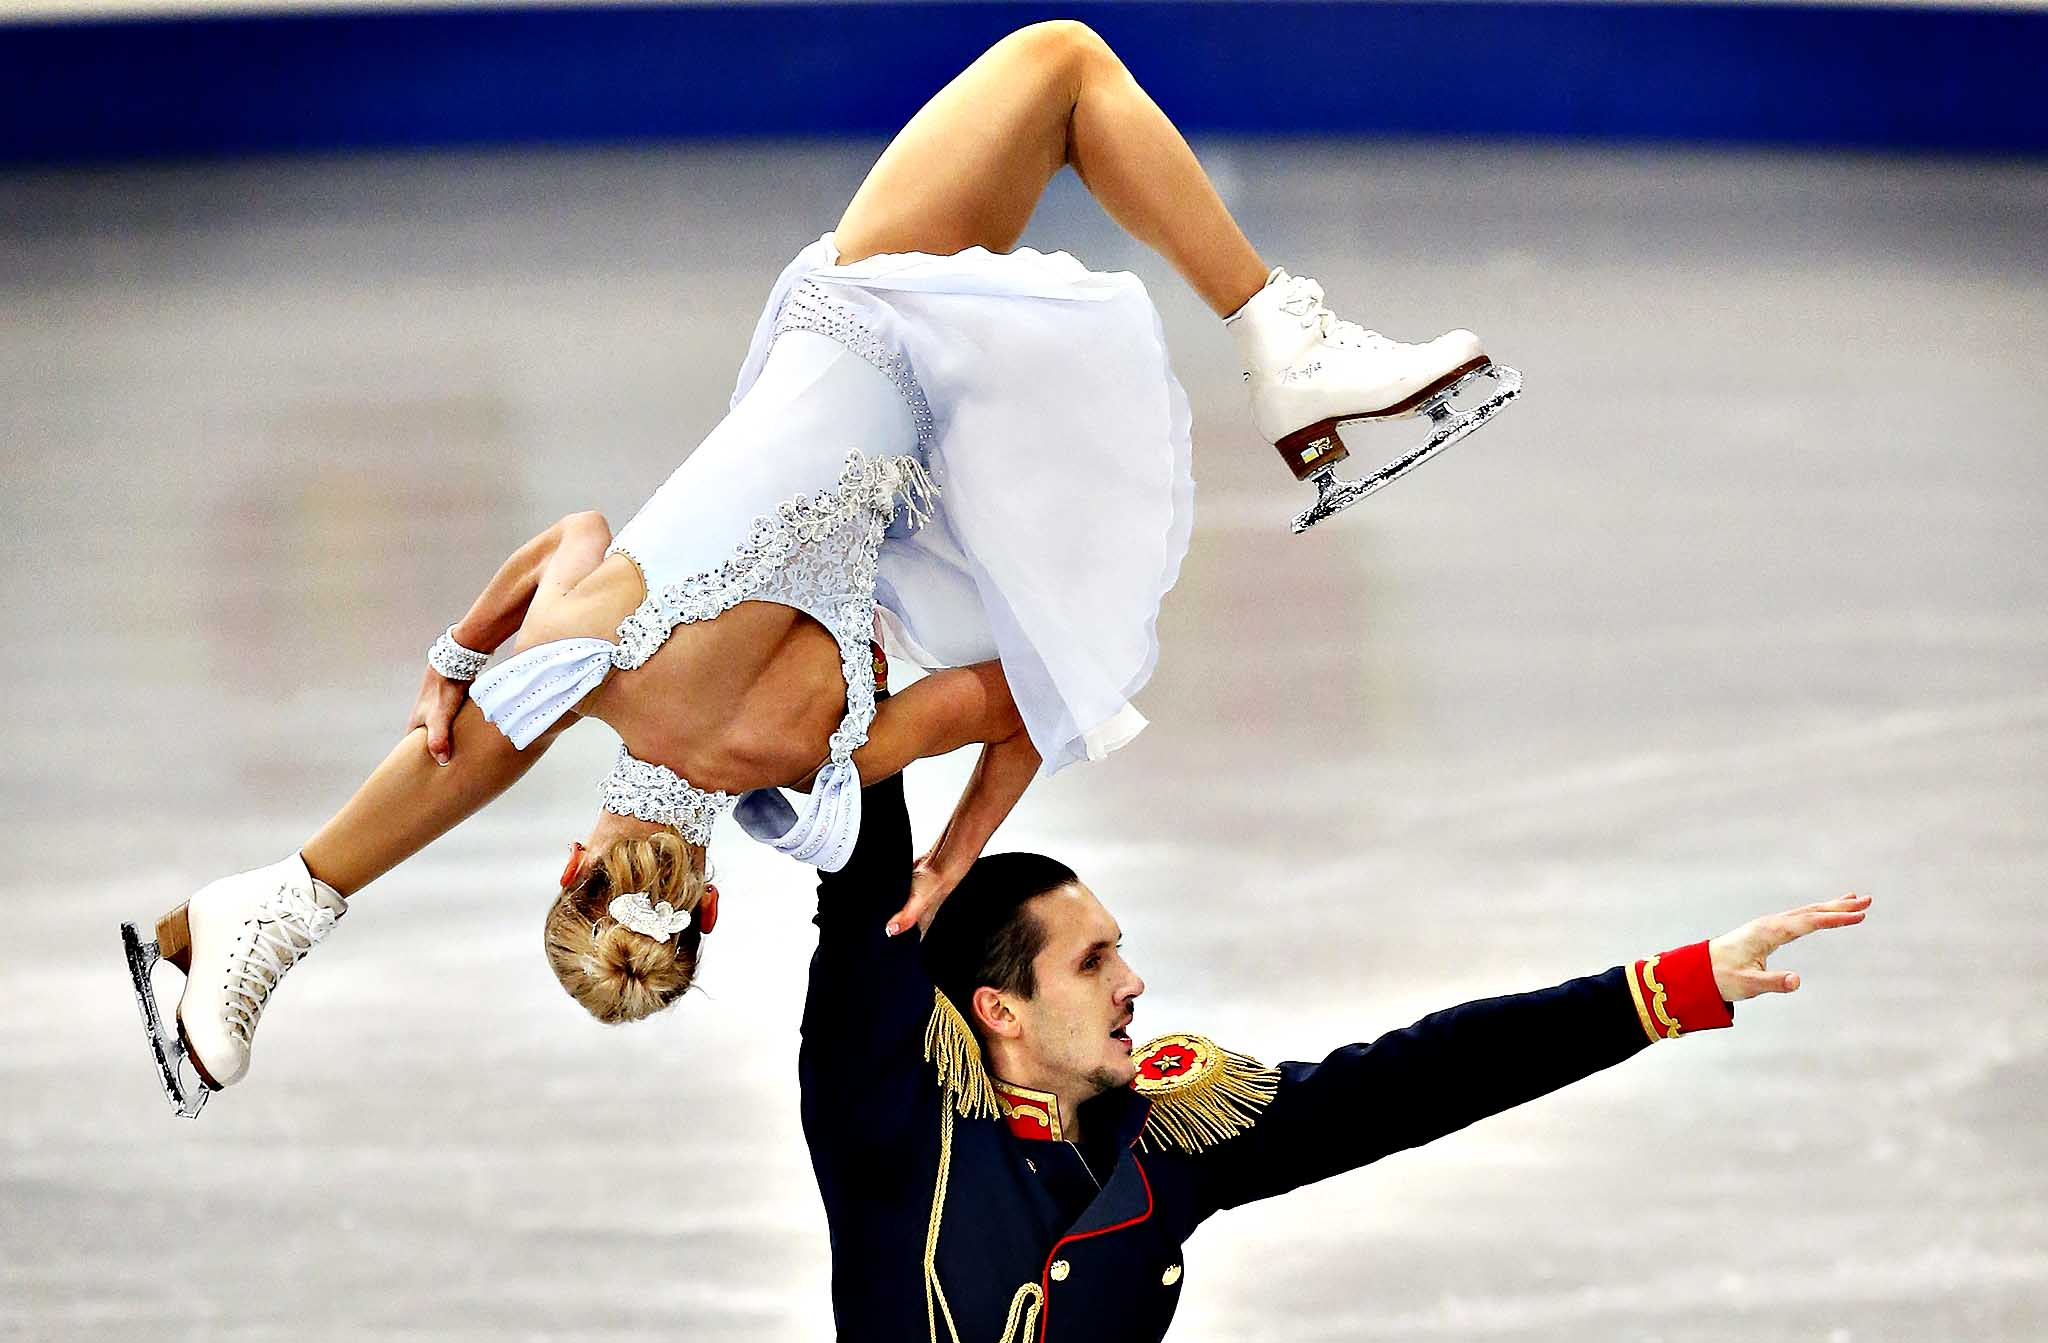 Russia's Tatiana Volosozhar and Maxim Trankov perform in the pairs short program at the European Figure Skating Championships in Budapest, Hungary, Friday, Jan. 17, 2014.